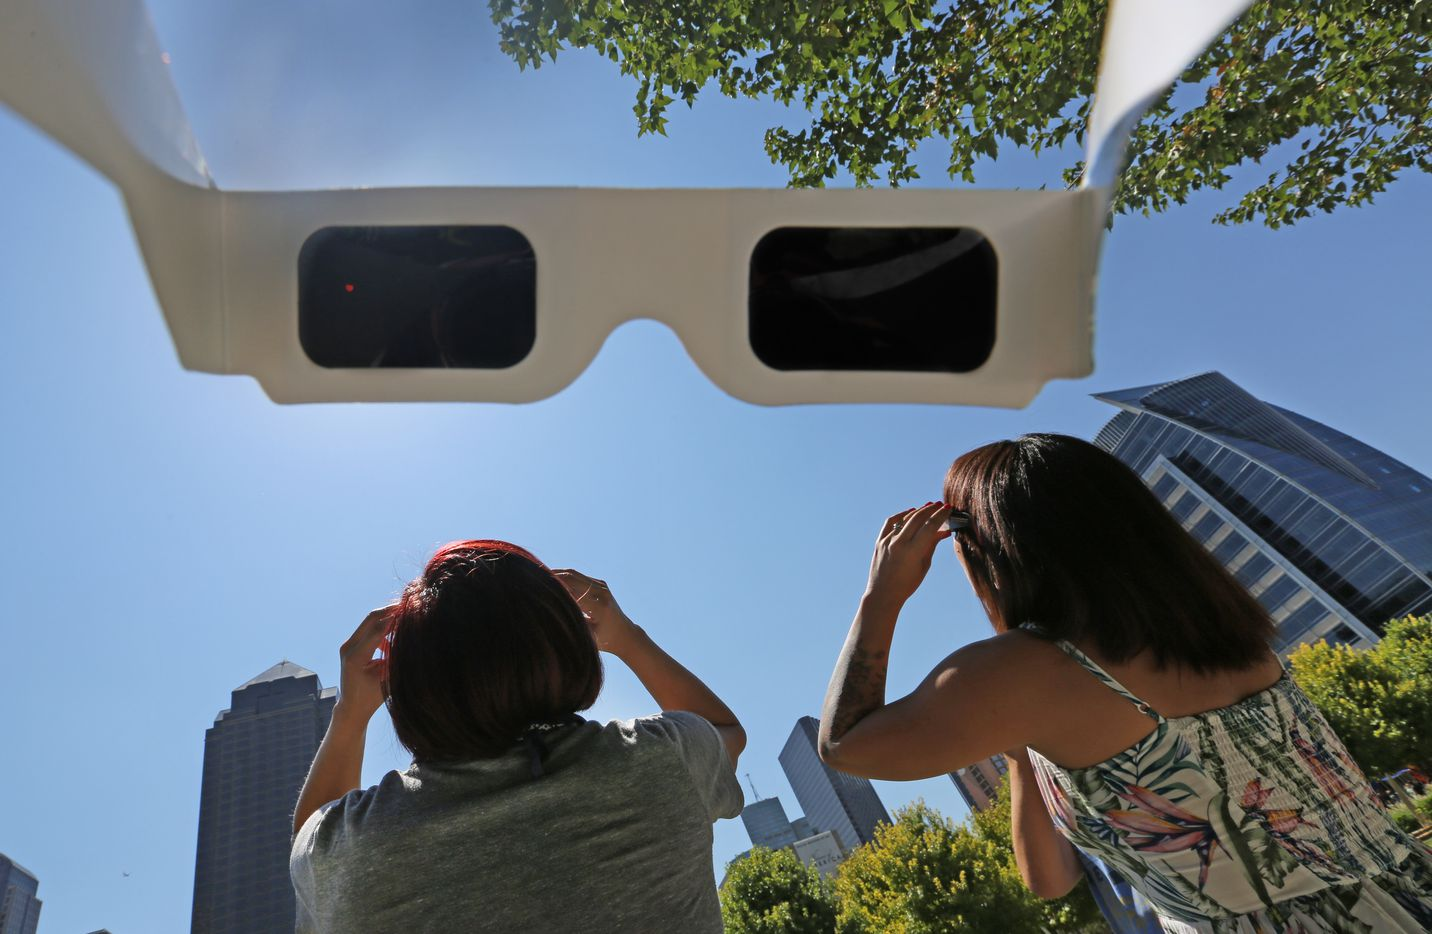 Rose Chavez and Adri Robles watched the solar eclipse through special sunglasses at Klyde Warren Park in Dallas on Monday. (Louis DeLuca/Staff Photographer)